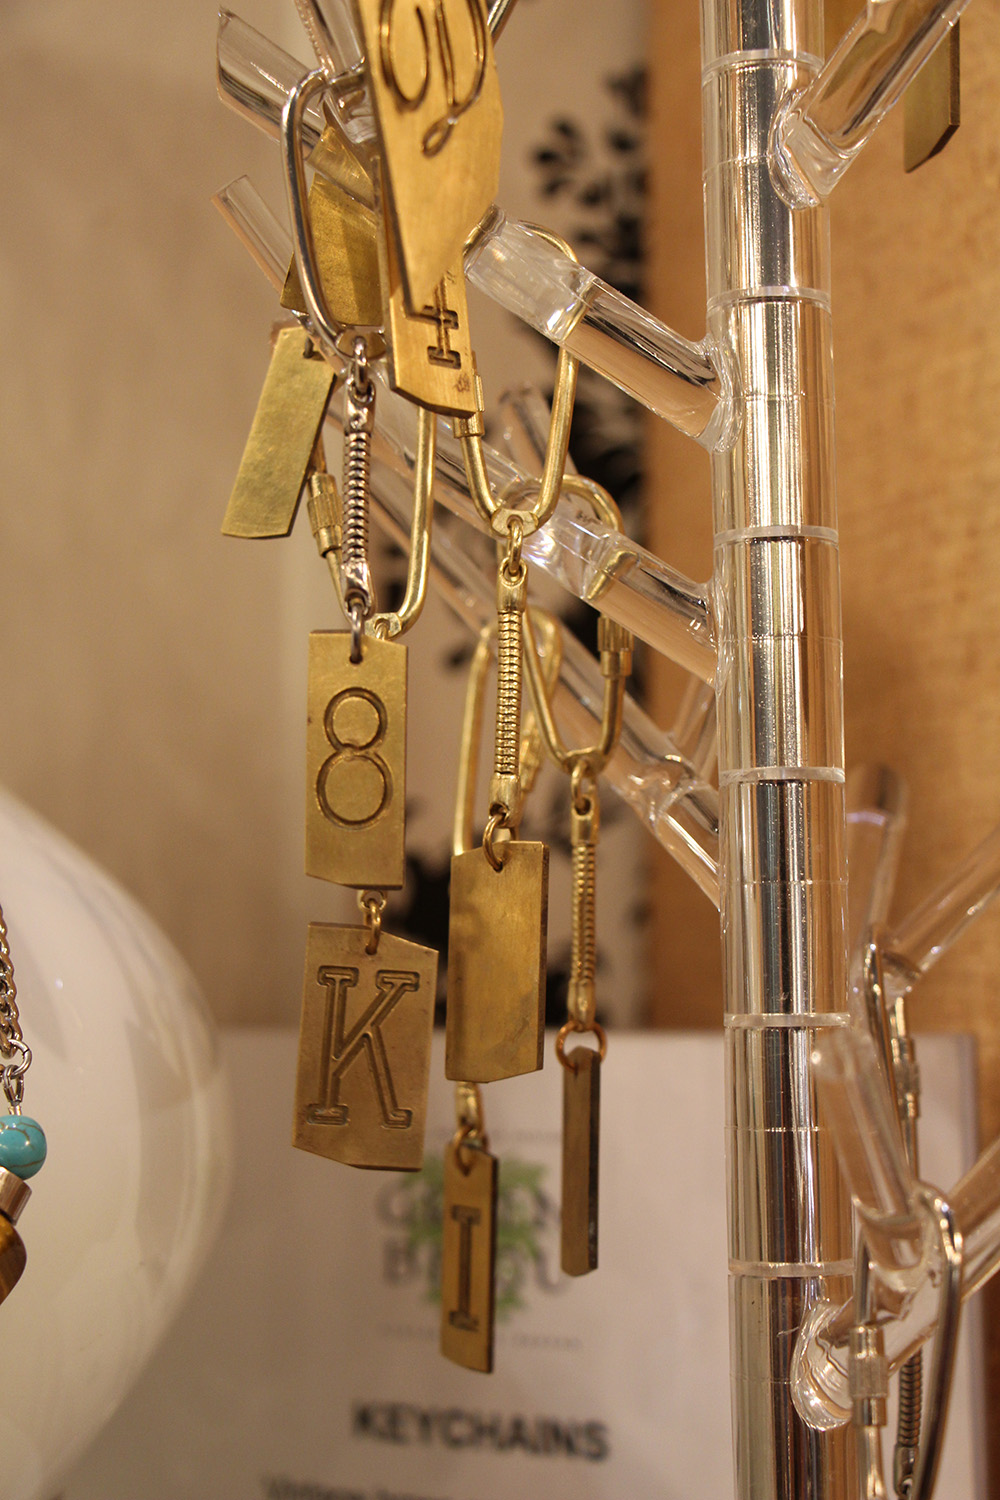 brass initial key chains